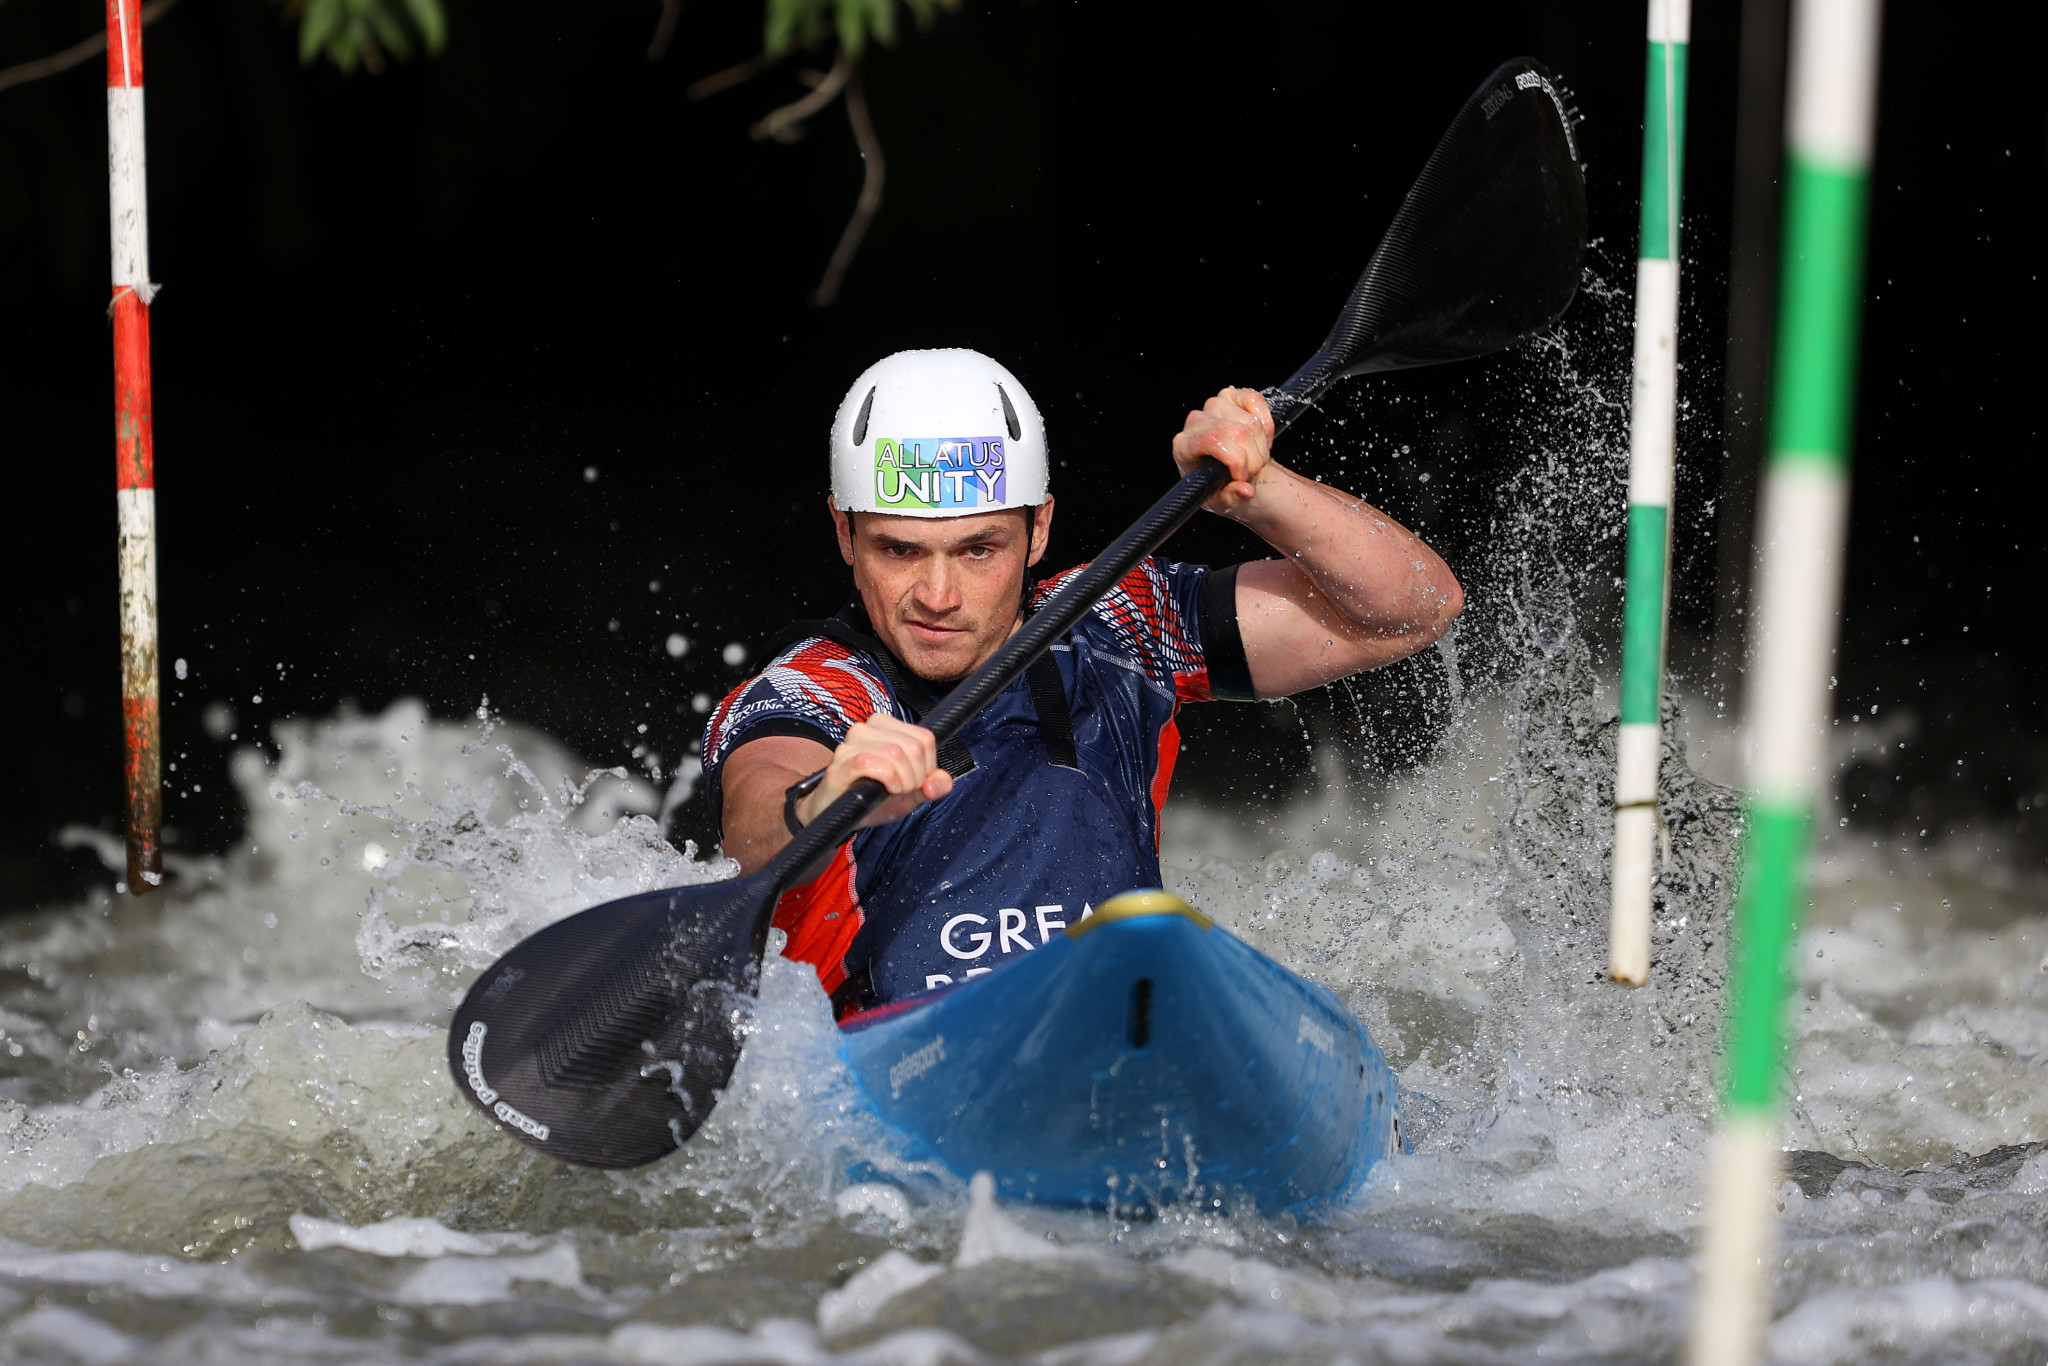 Bradley Forbes-Cryans claimed the men's K1 spot for Britain for Tokyo 2020 ©Getty Images